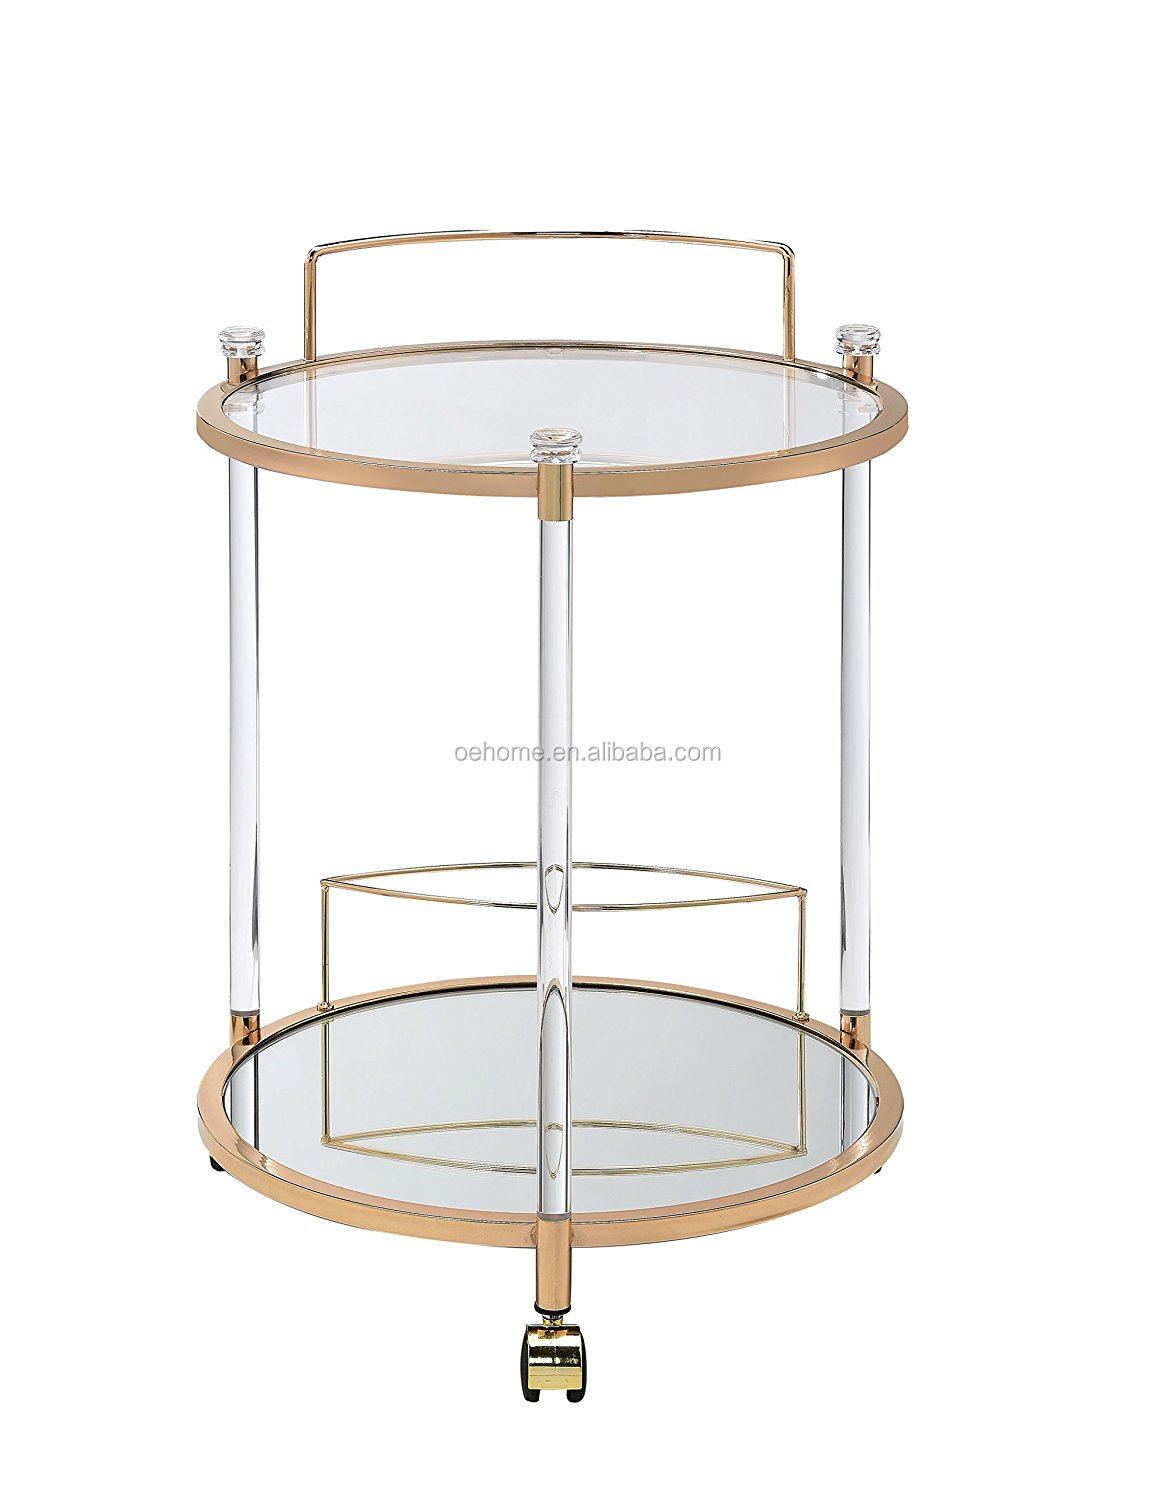 Champagne Gold Metal And White Marble Bar Cart Hotel Tea Trolley With Wheels Hotel Furniture High Quality Gold Metal Bar Cart Buy Bar Cart Serving Trolley Cart Outdoor Trolley Cart Product On Alibaba Com